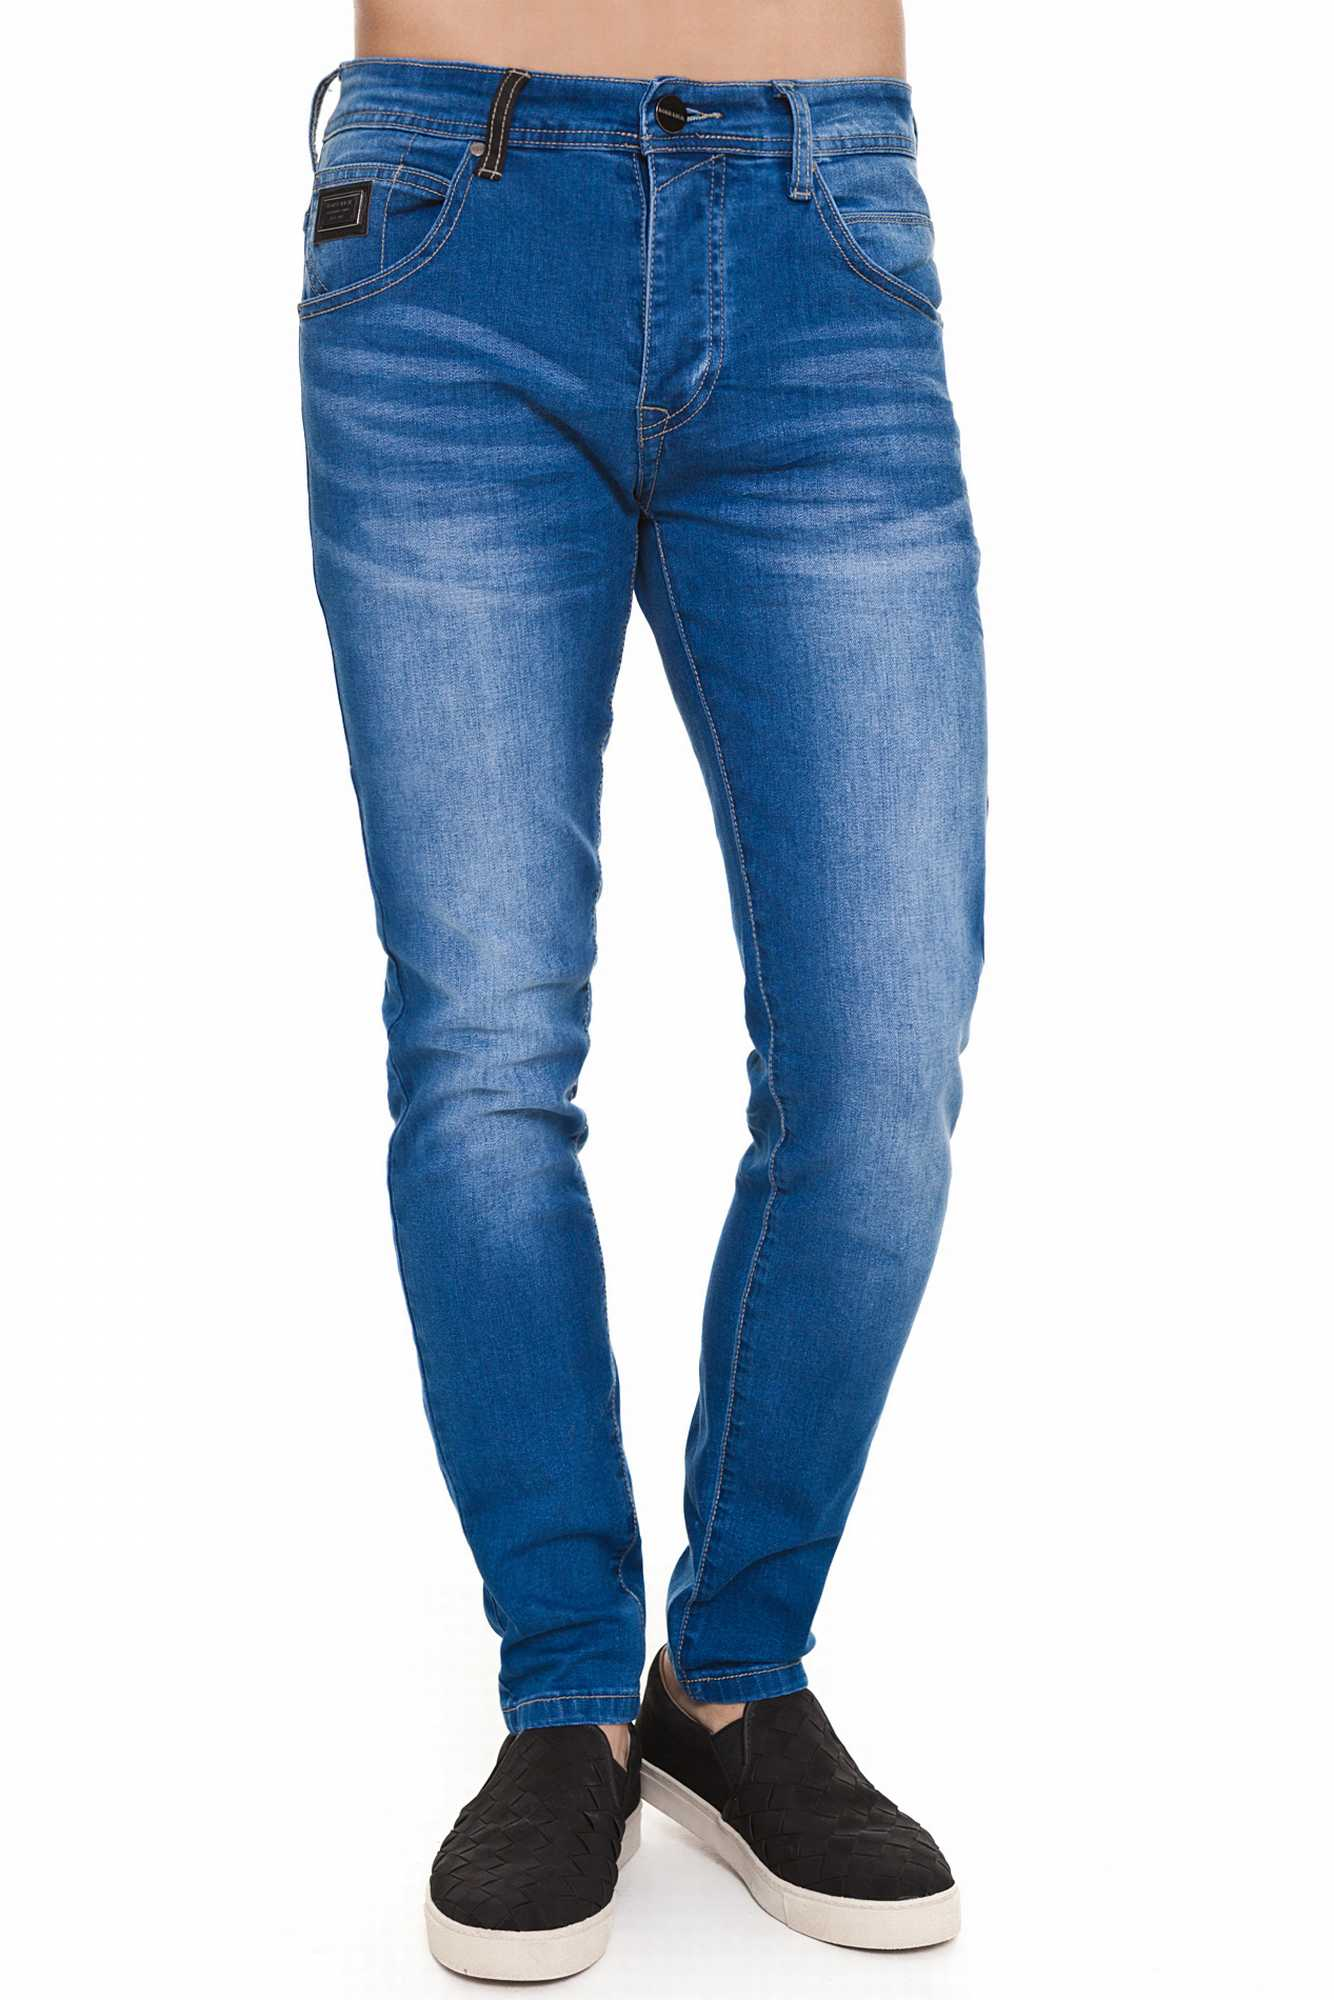 Born Rich OSMIUM Jeans For Men Dark Blue BR2B109914DW3BRC2-2